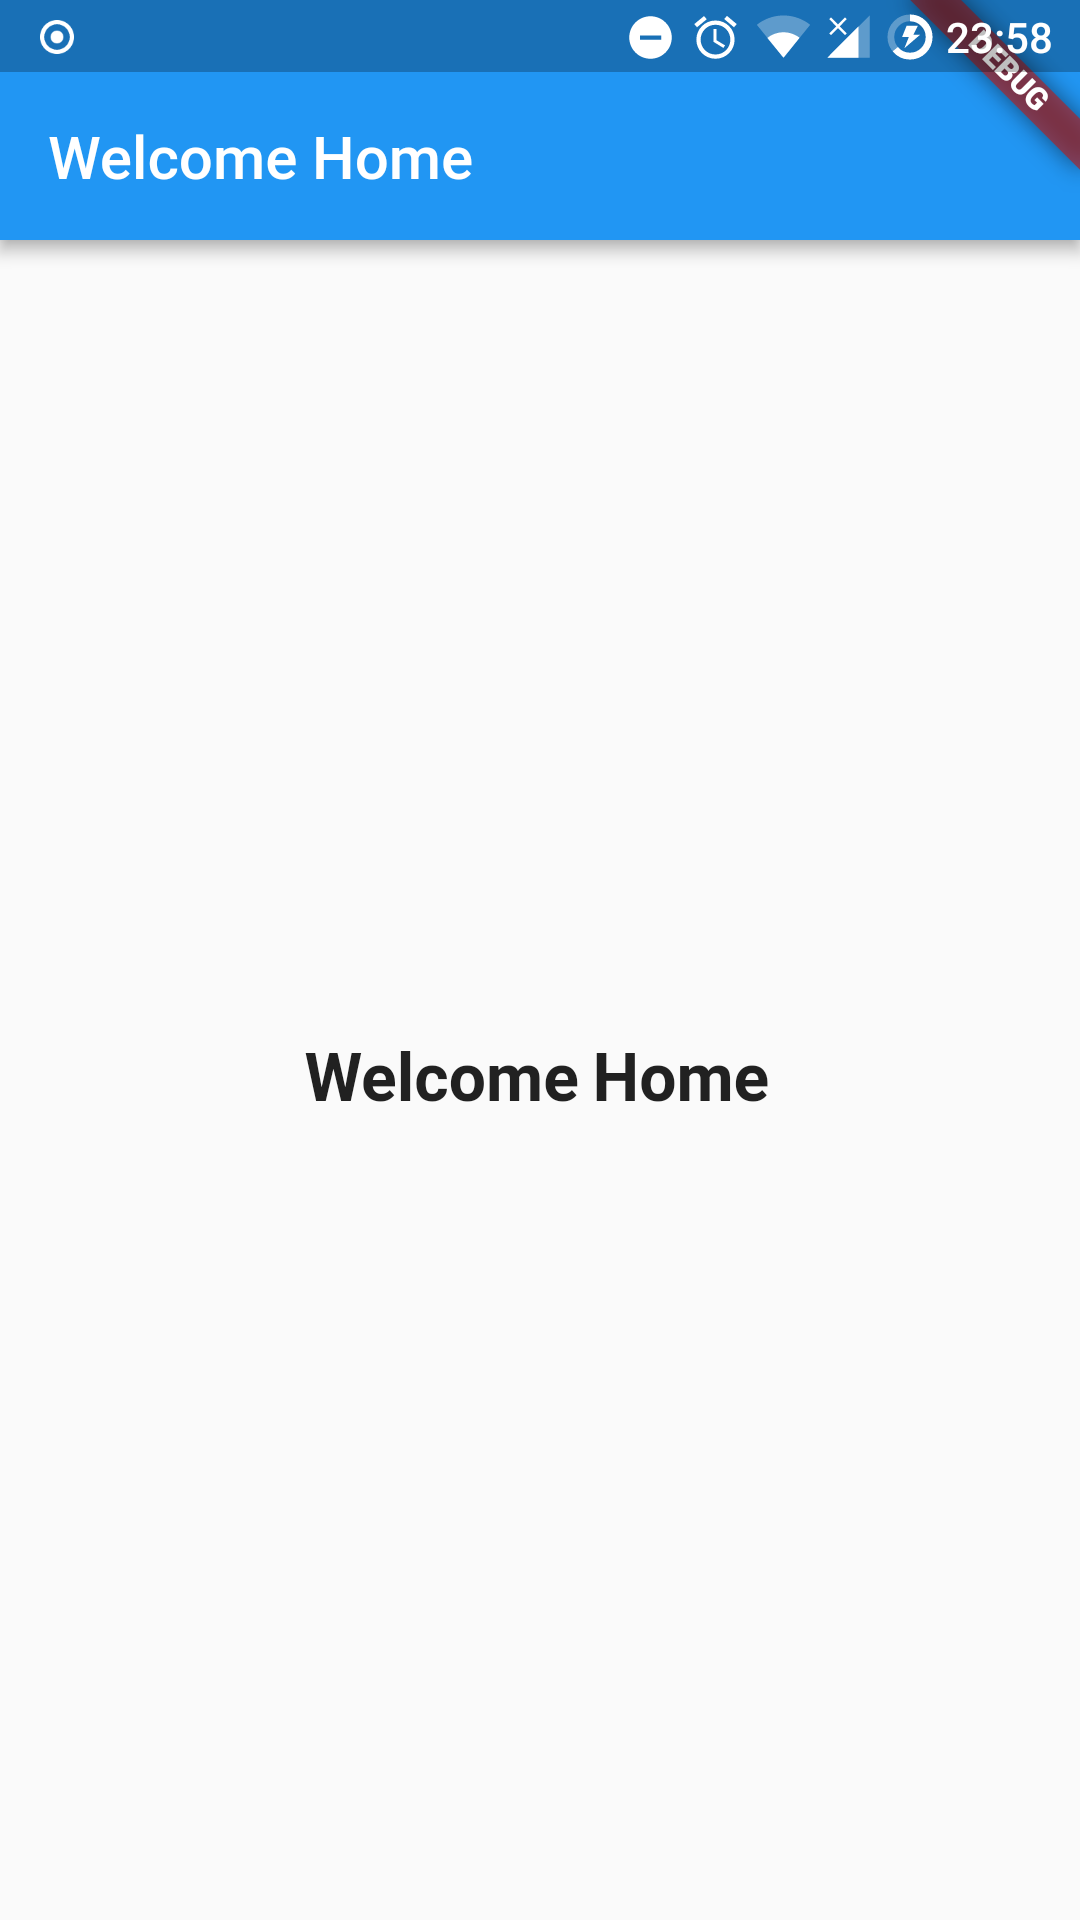 Flutter - Barebones, Basic Good Looking Login Page, with